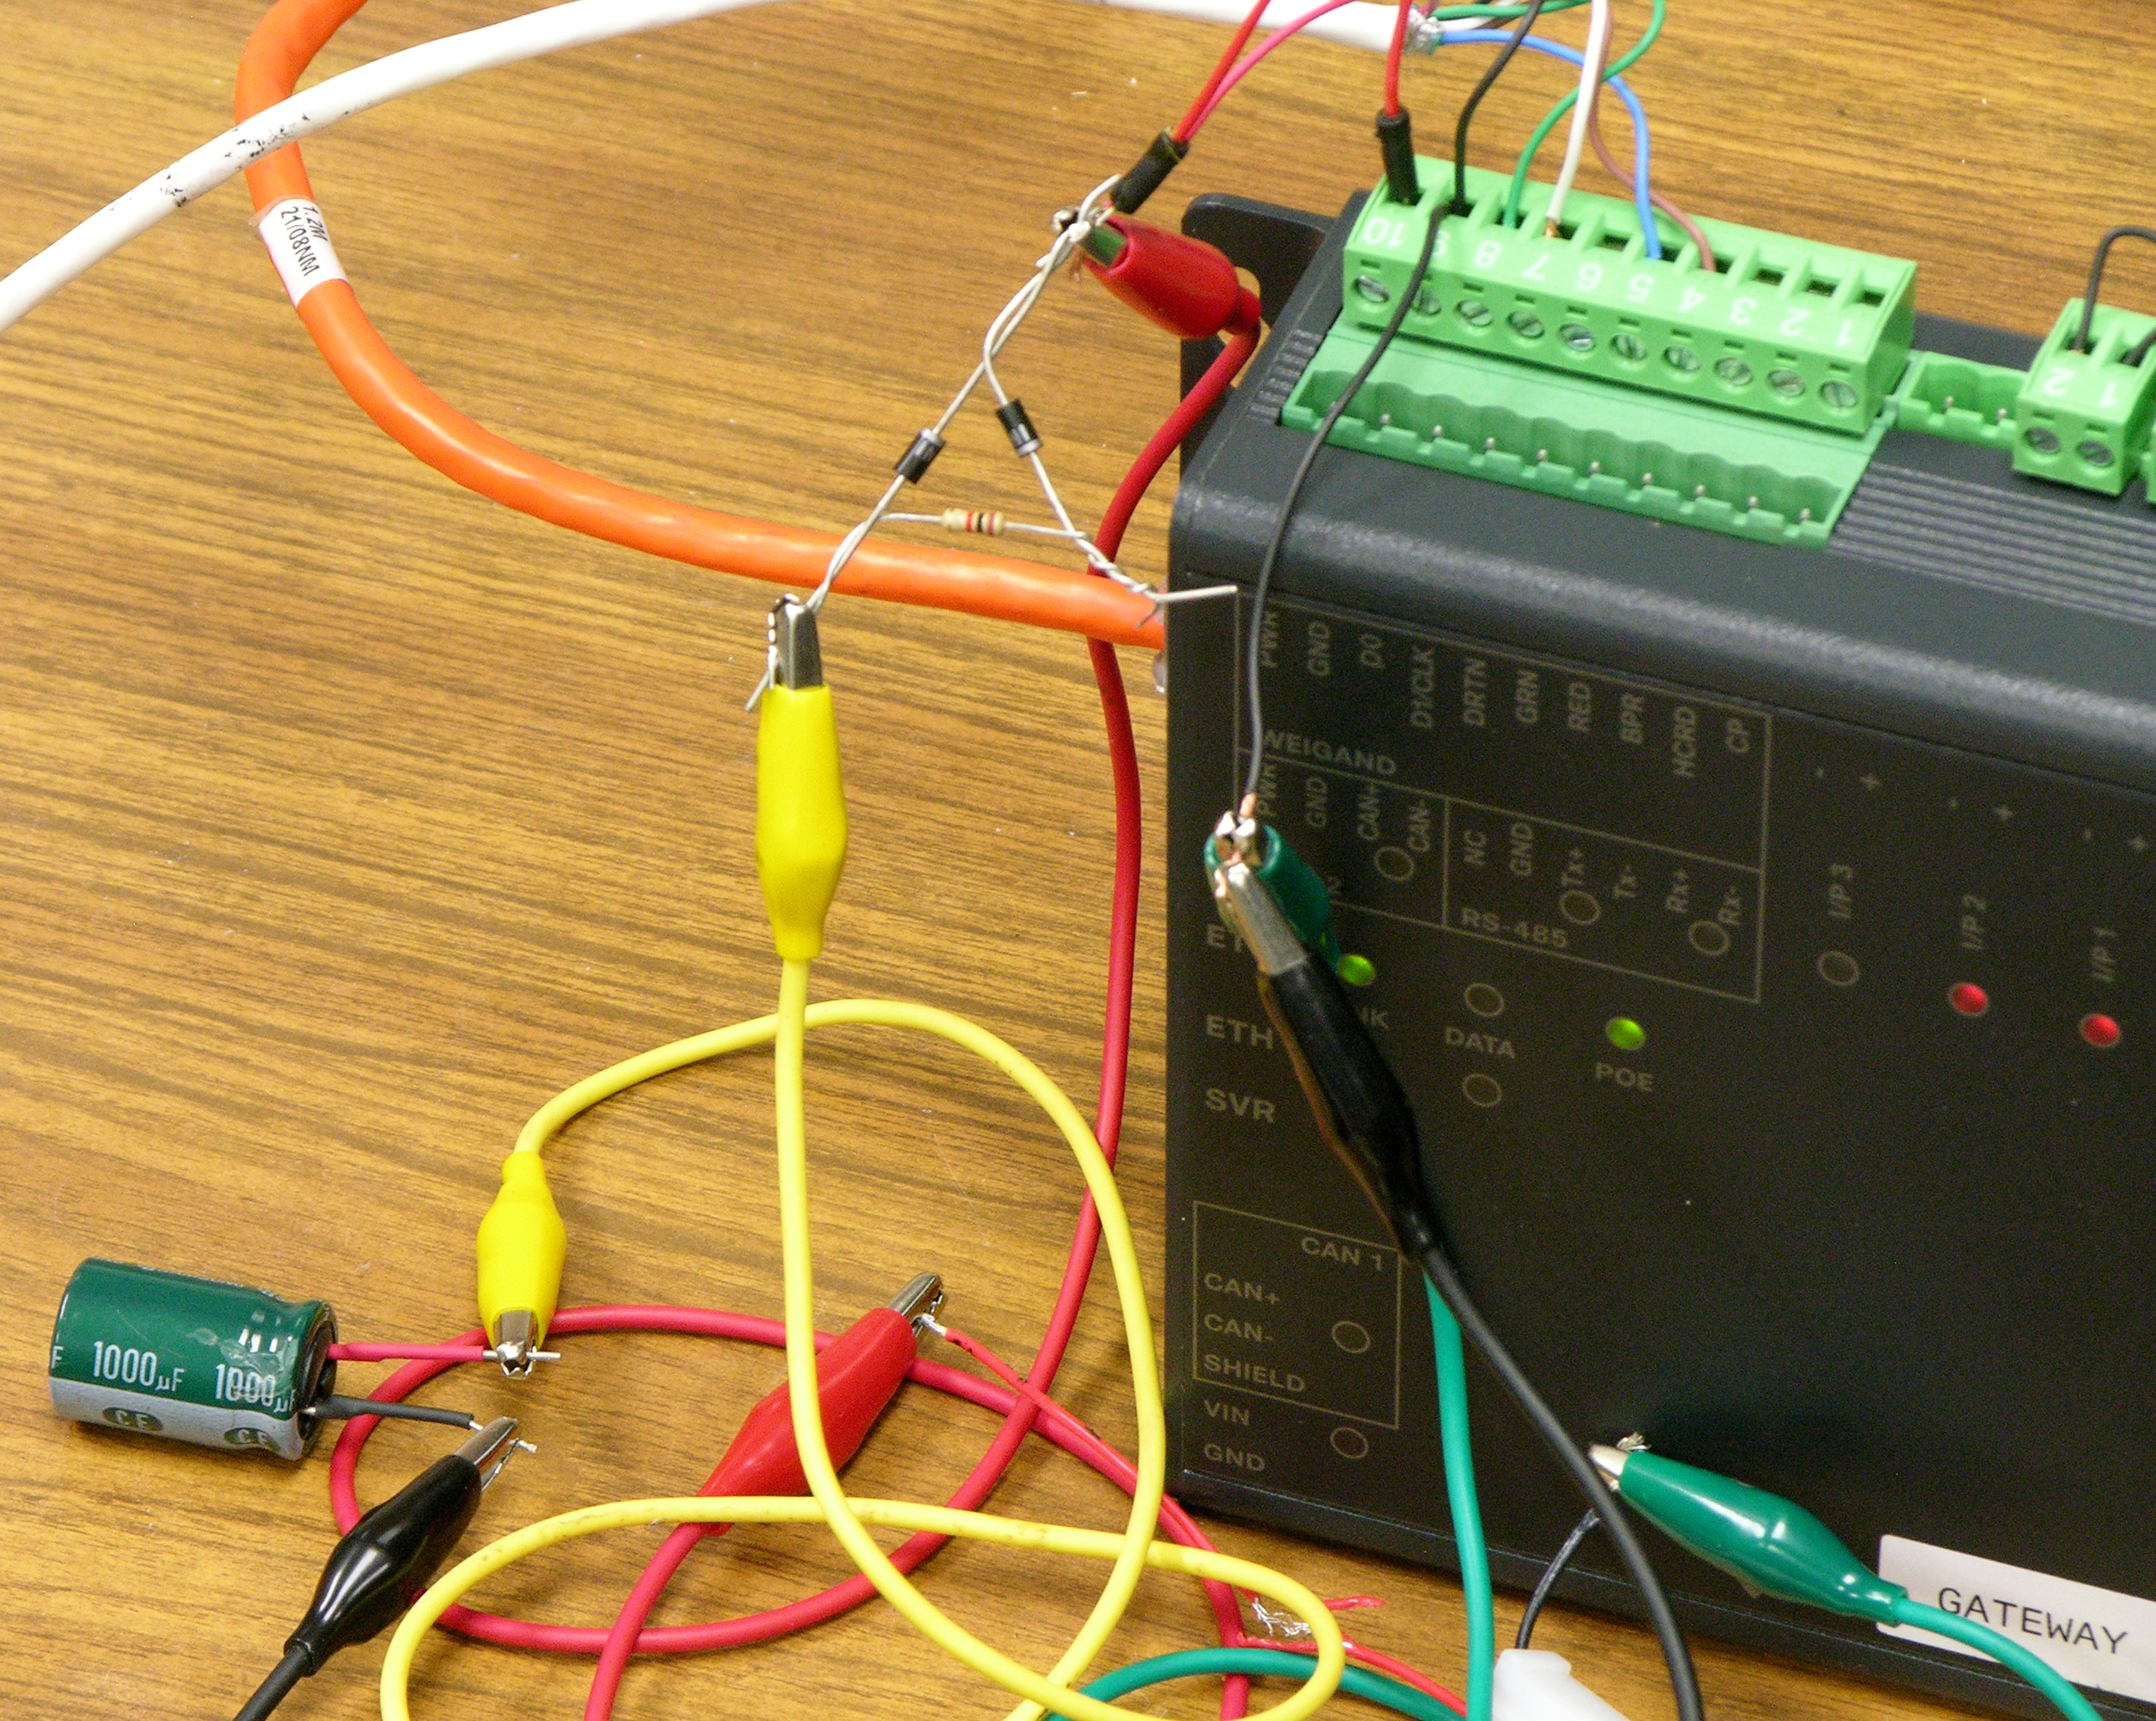 Keiths Electronics Blog Wiring Cnc Diagram Controller 4060z Diode Resistor Arrangement For Slow Filter Capacitor Charge